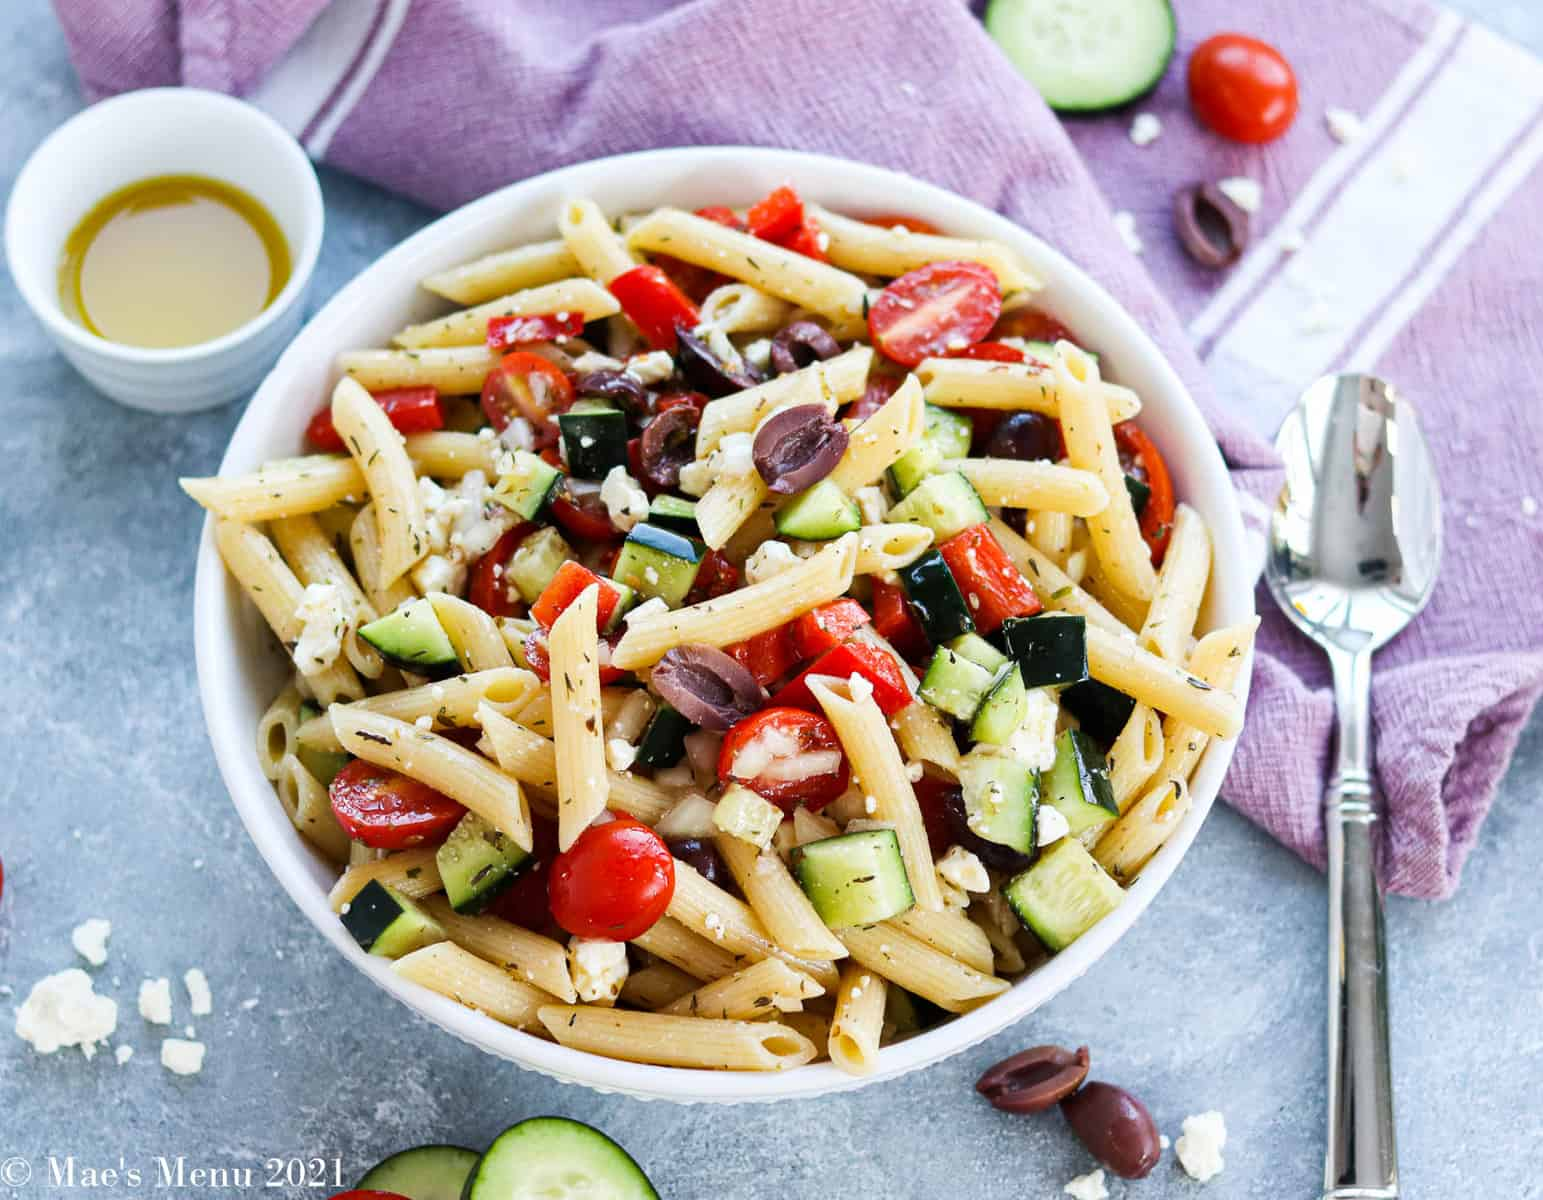 An overhead shot of a bowl of Greek Penne pasta slad surrounded by veggies, spoons, etc.